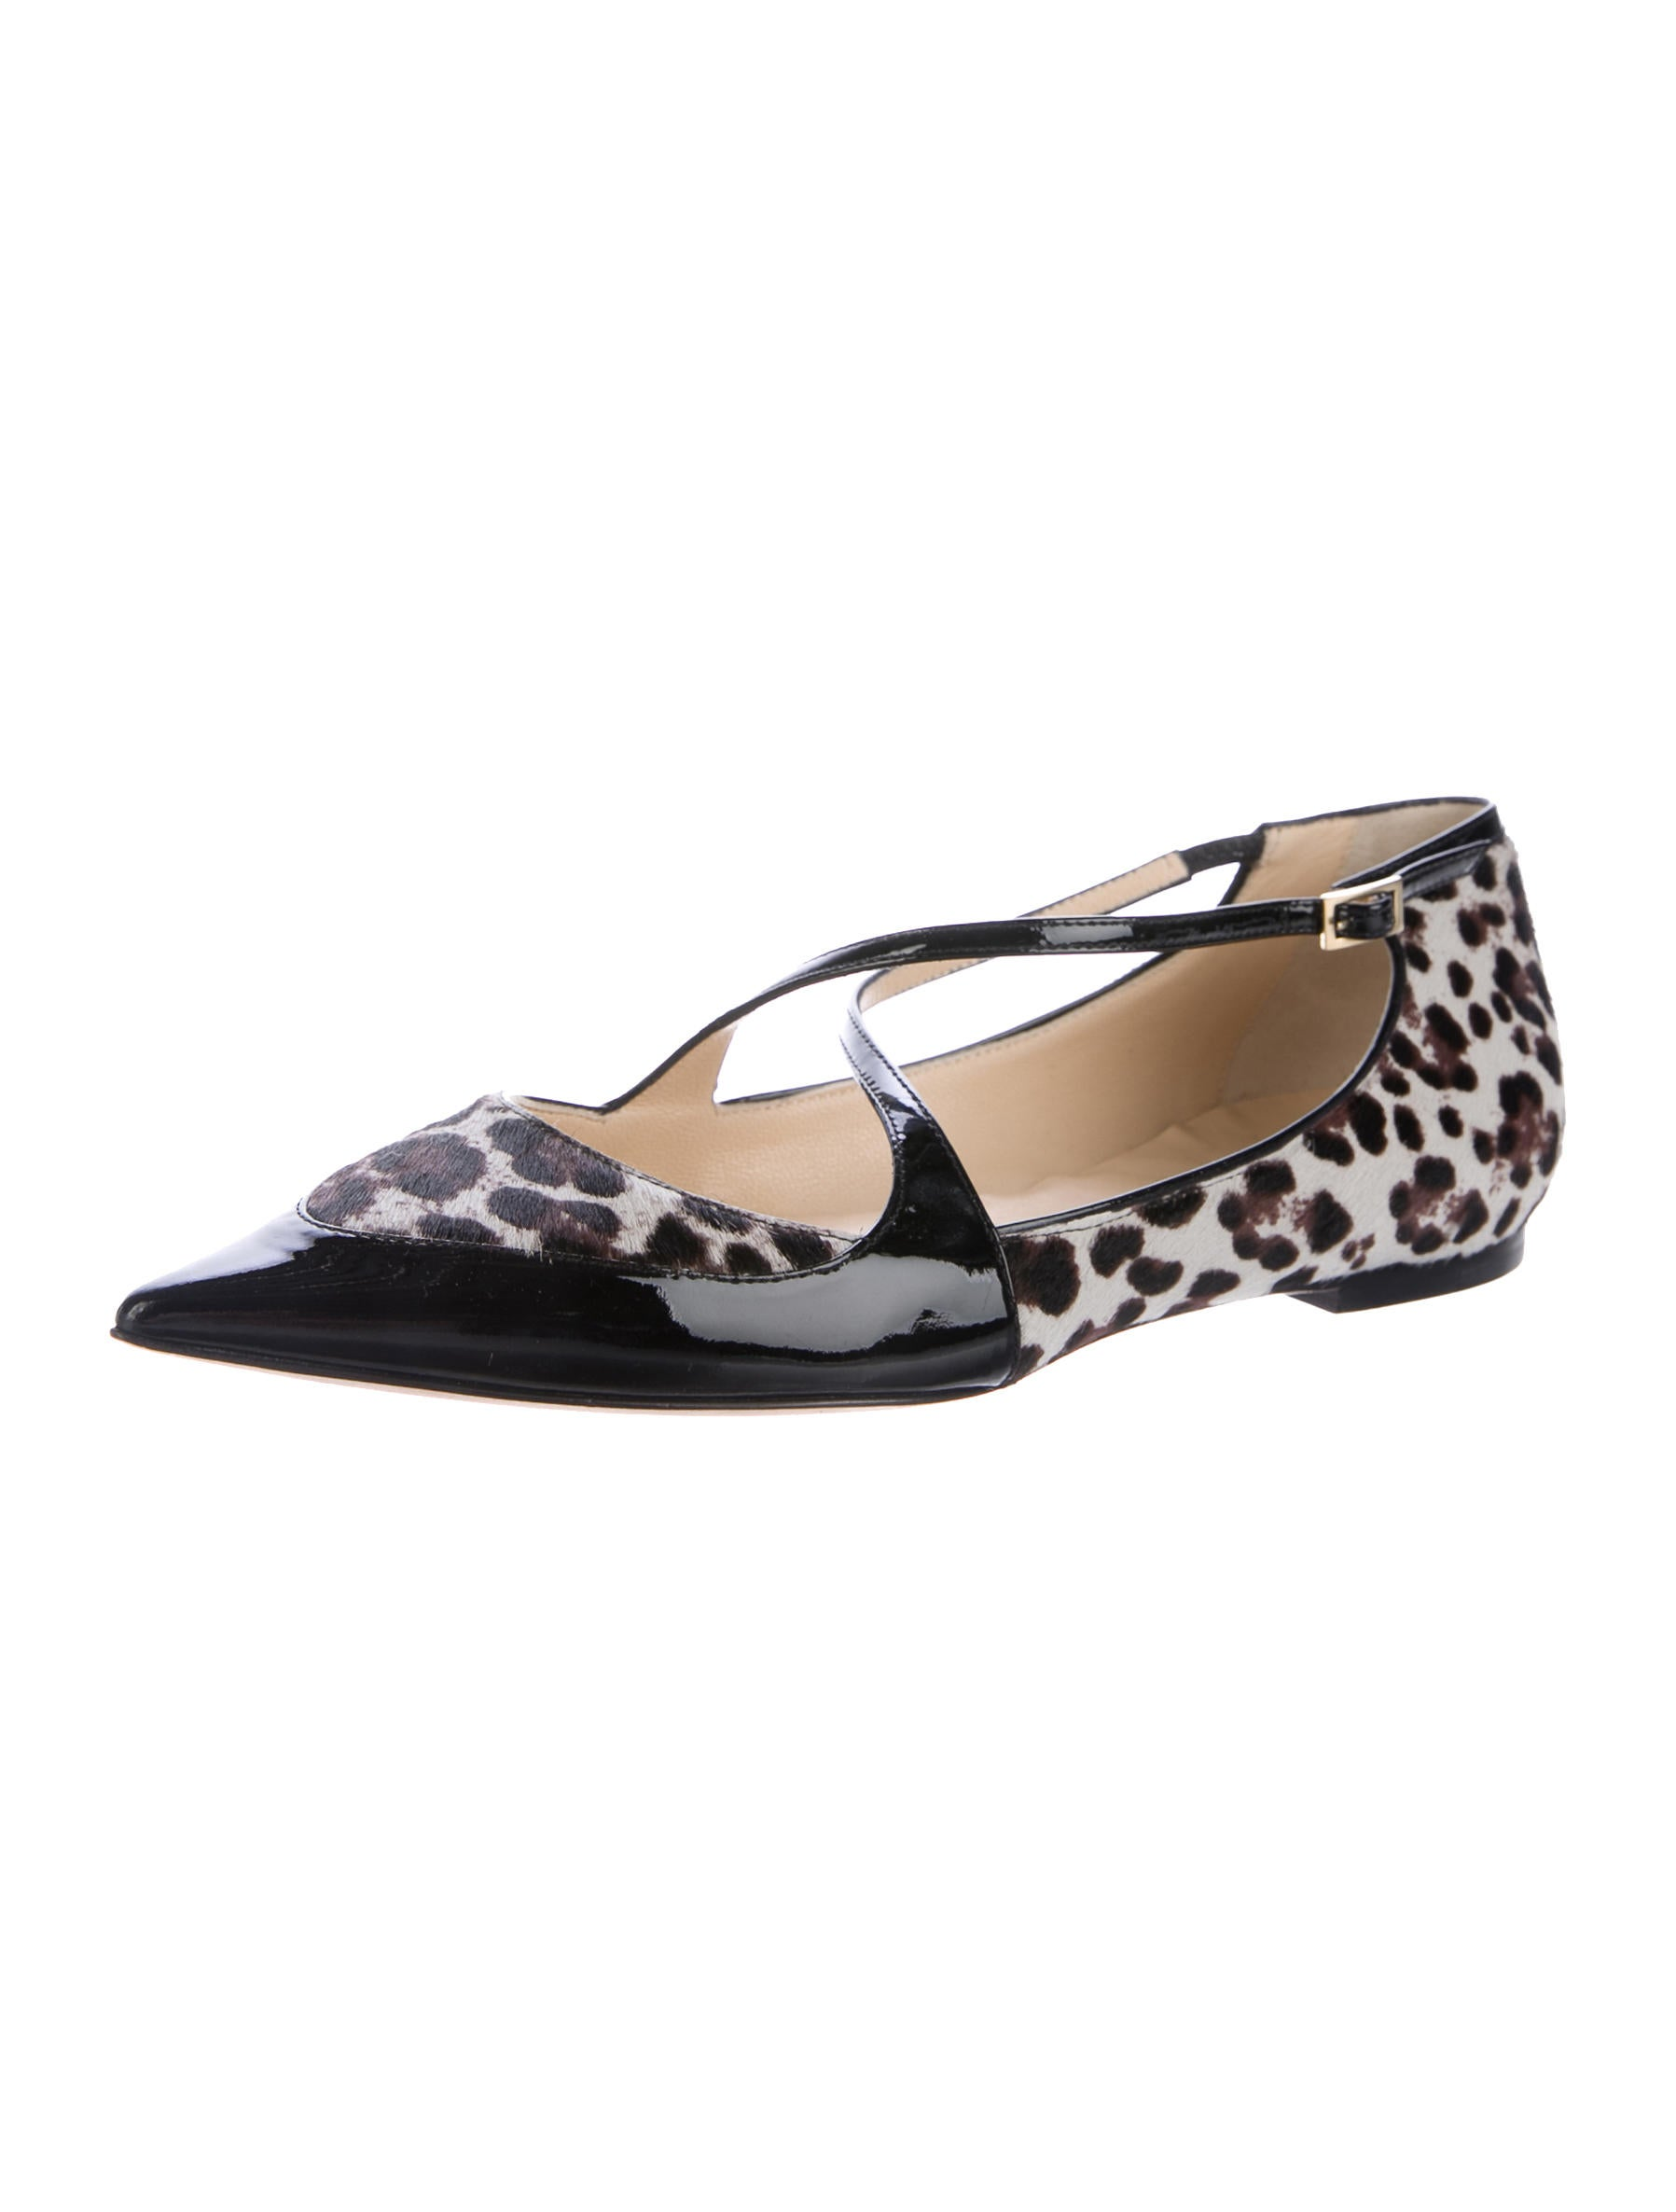 buy cheap store on hot sale Jimmy Choo Ponyhair Pointed-Toe Flats iEf7wV